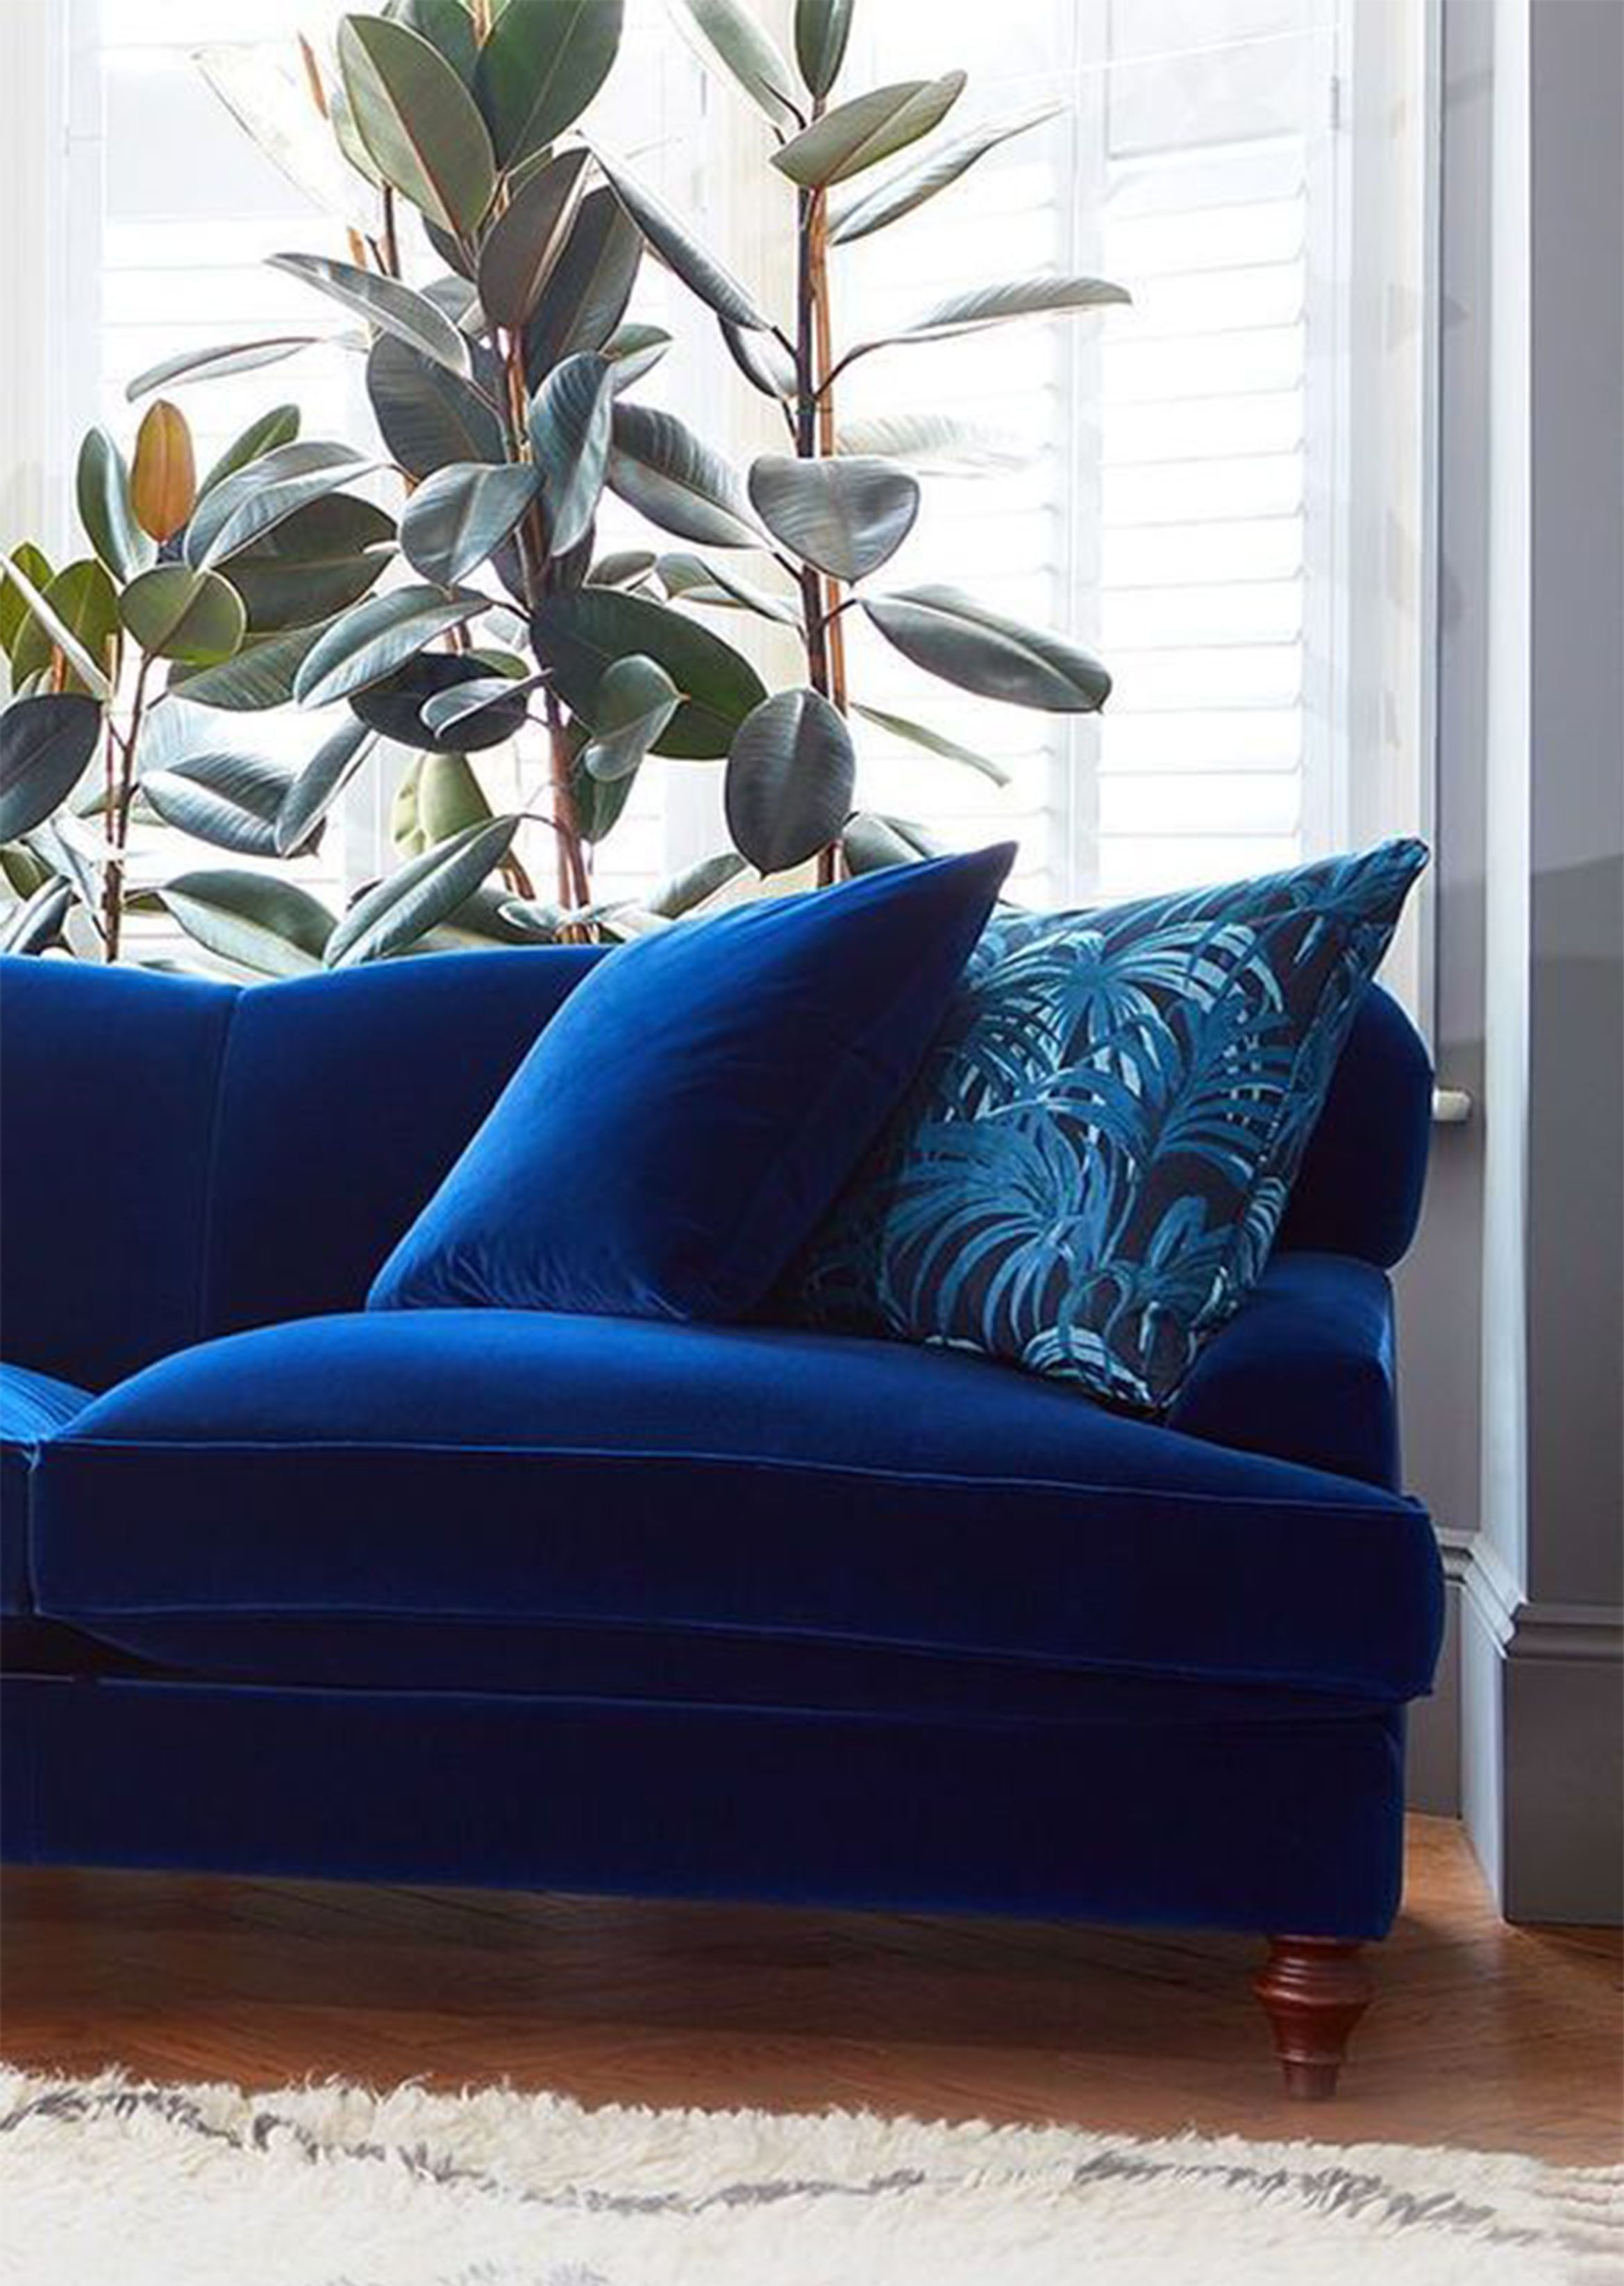 Pin On Clic Blue Pantone Color Of